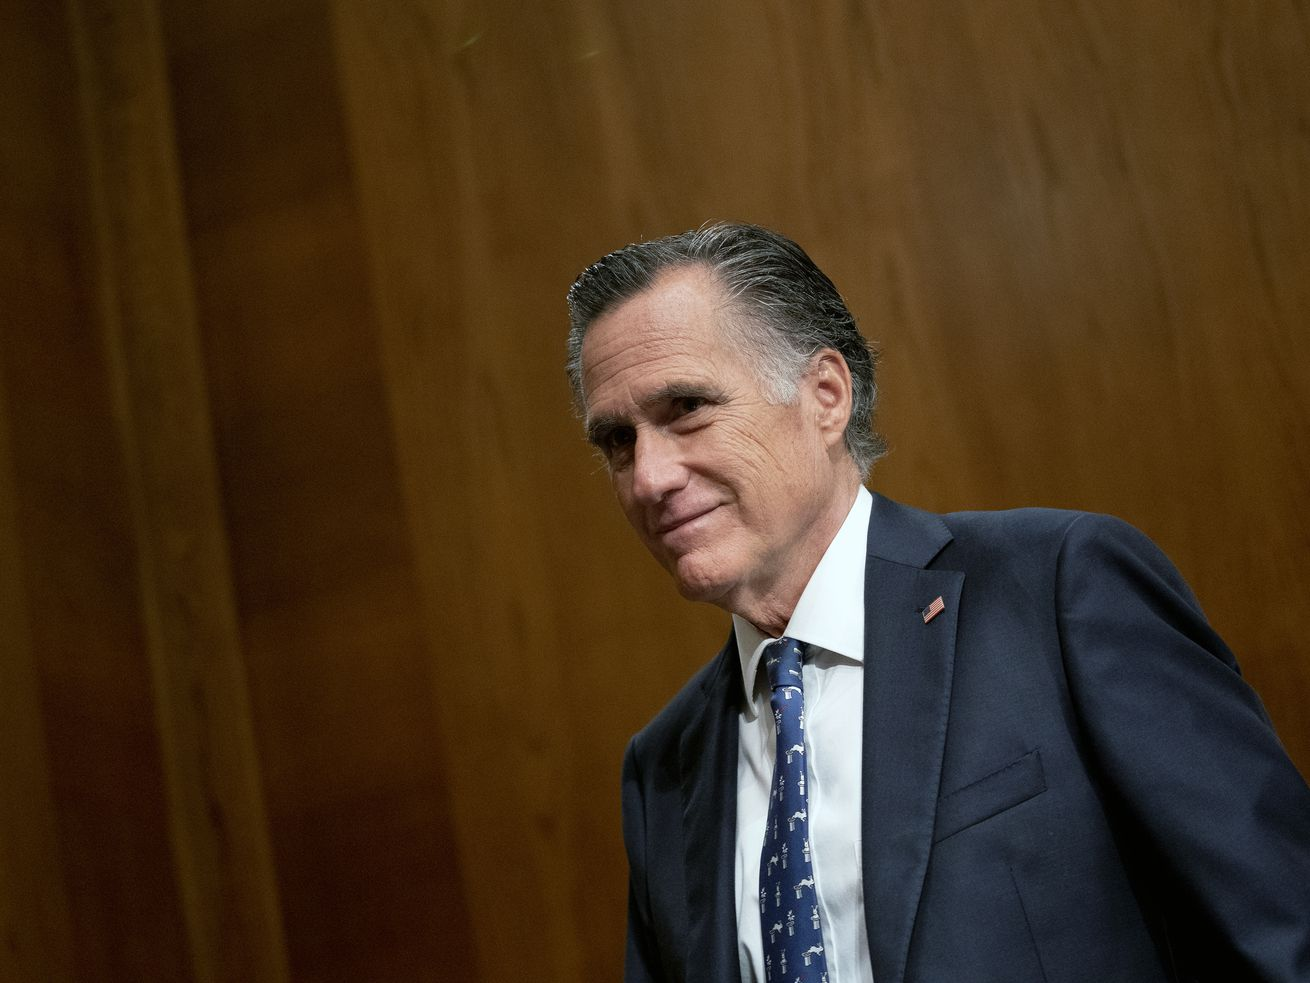 So Mitt Romney brought J Dawgs, BYU Creamery ice cream and chocolate milk to Washington for a Republican lunch